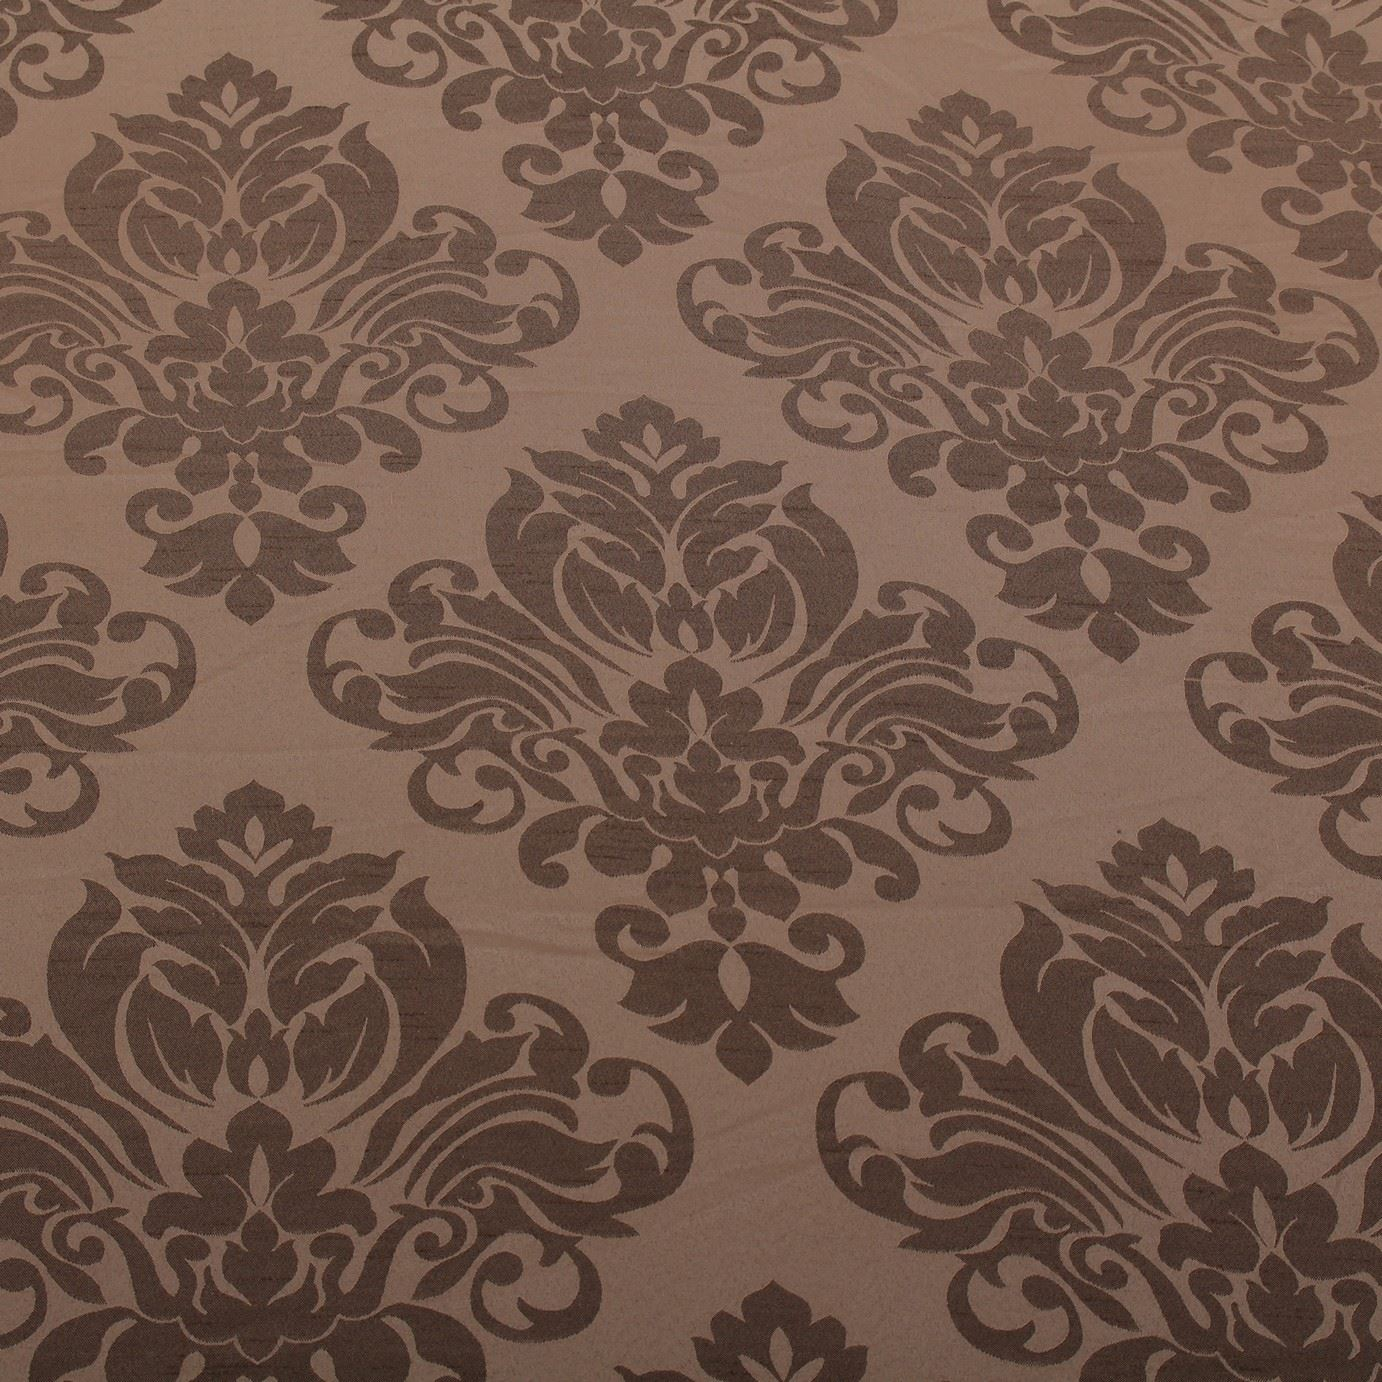 FLORAL-DAMASK-FAUX-SILK-JACQUARD-CURTAIN-UPHOLSTERY-FABRIC-MATERIAL-12-COLOURS thumbnail 7